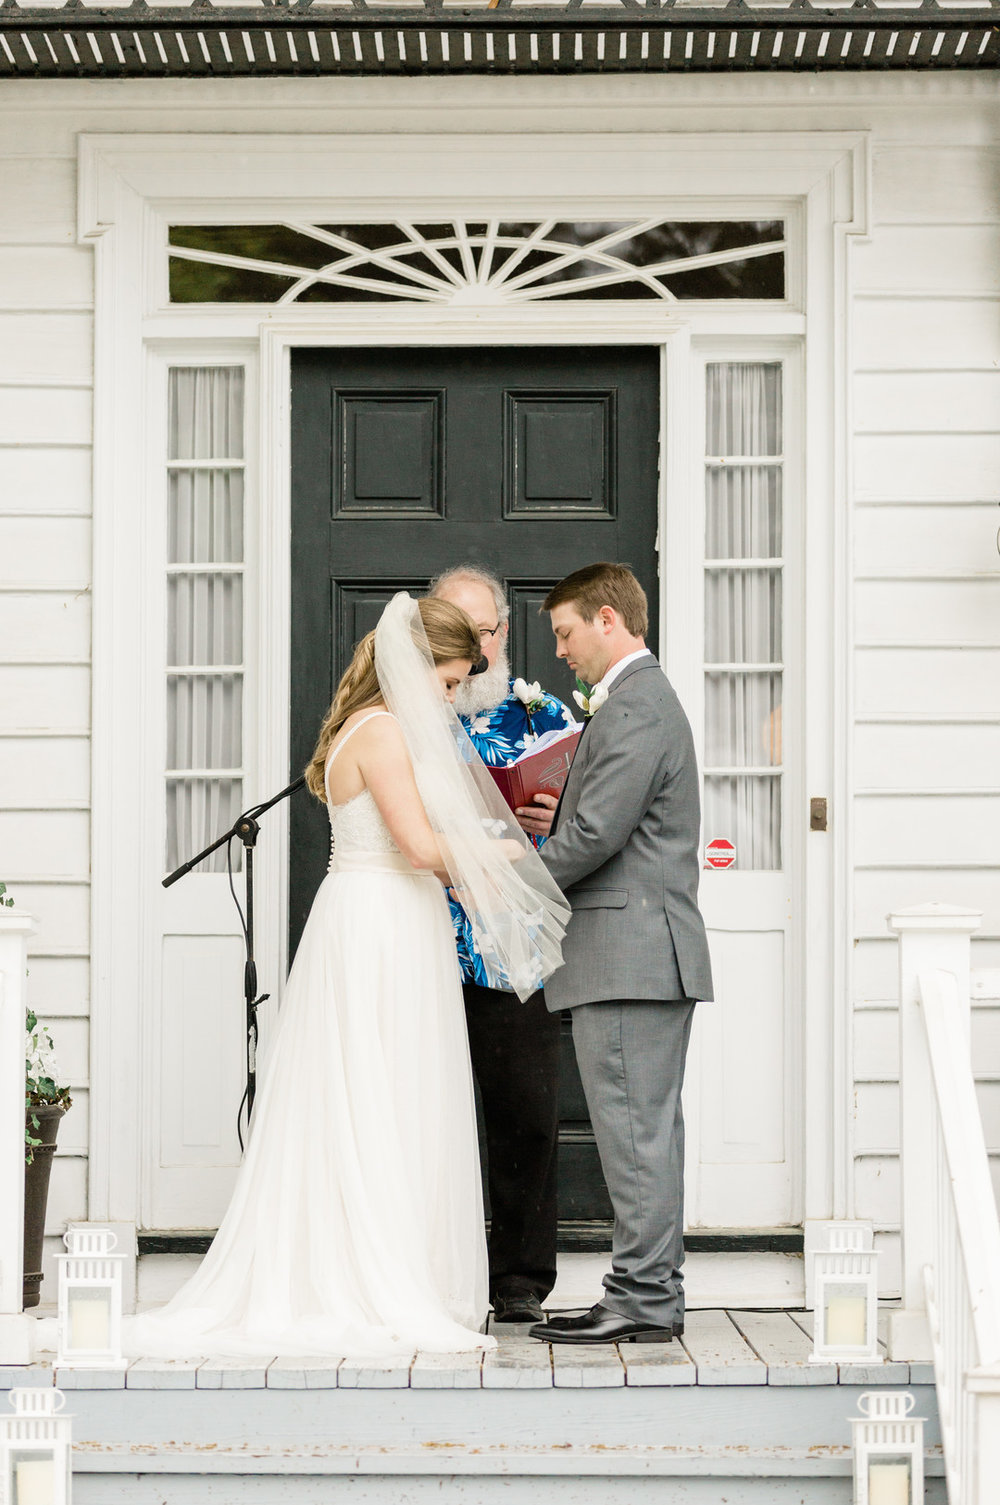 kaminski-house-wedding-21.jpg